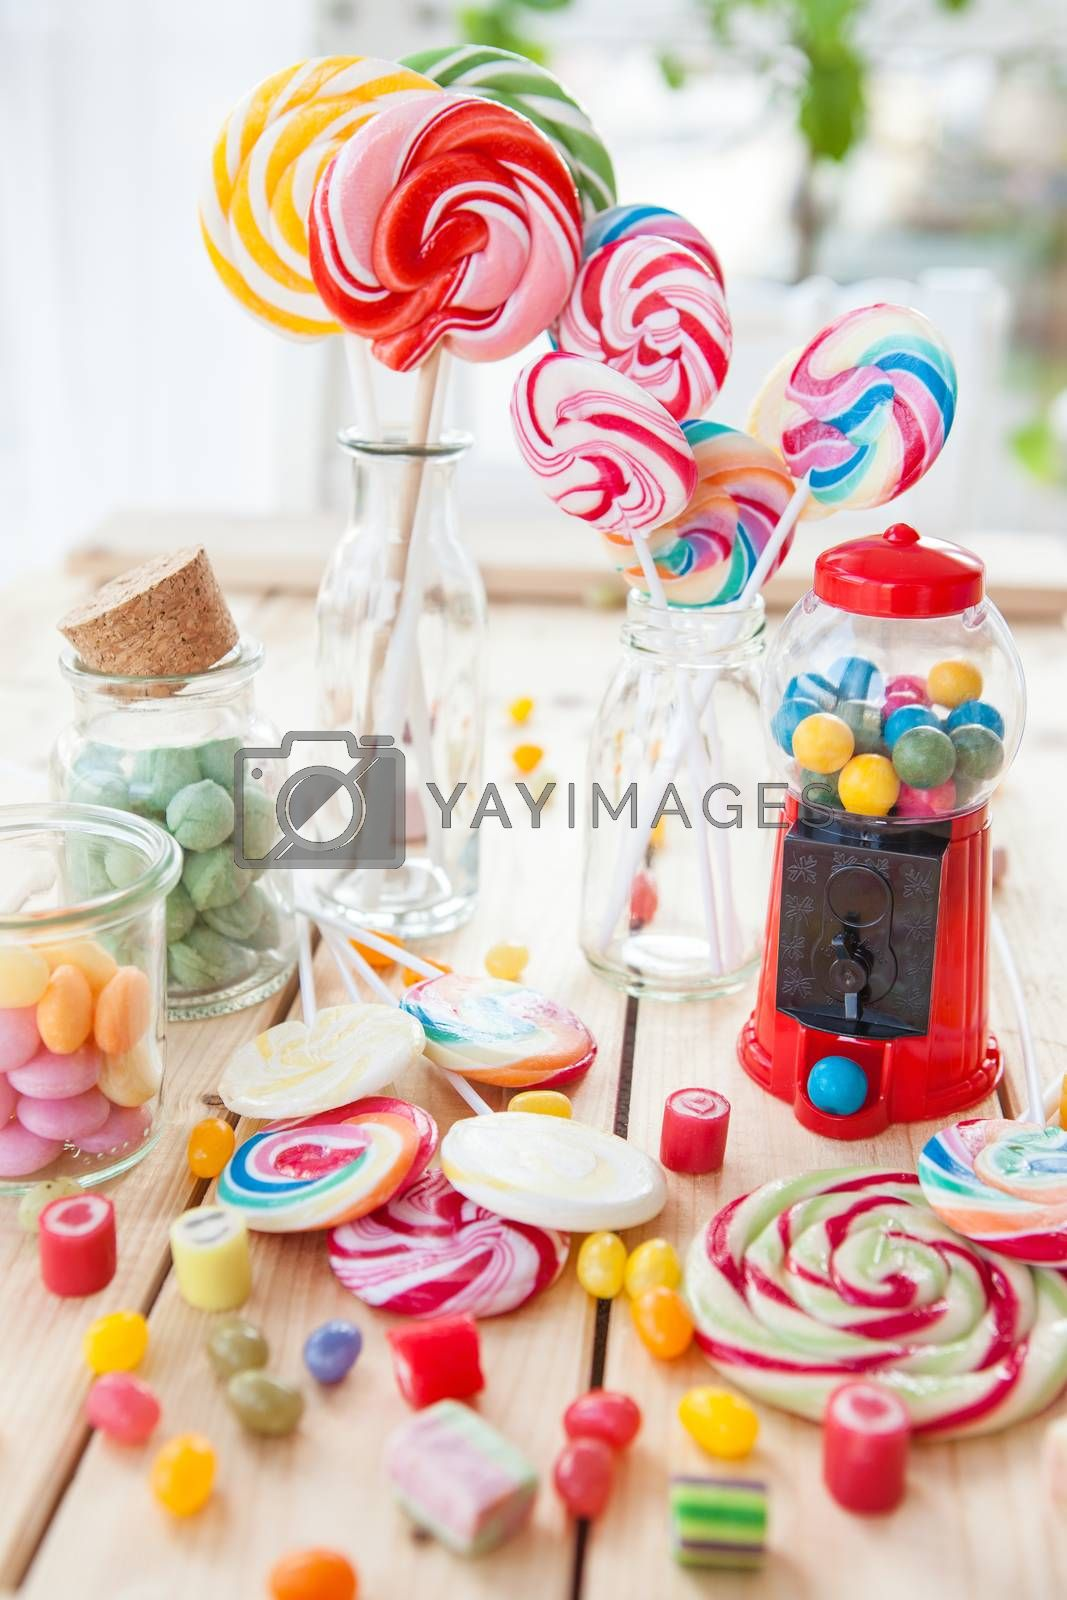 Royalty free image of Colorful popsicles and candy by BarbaraNeveu